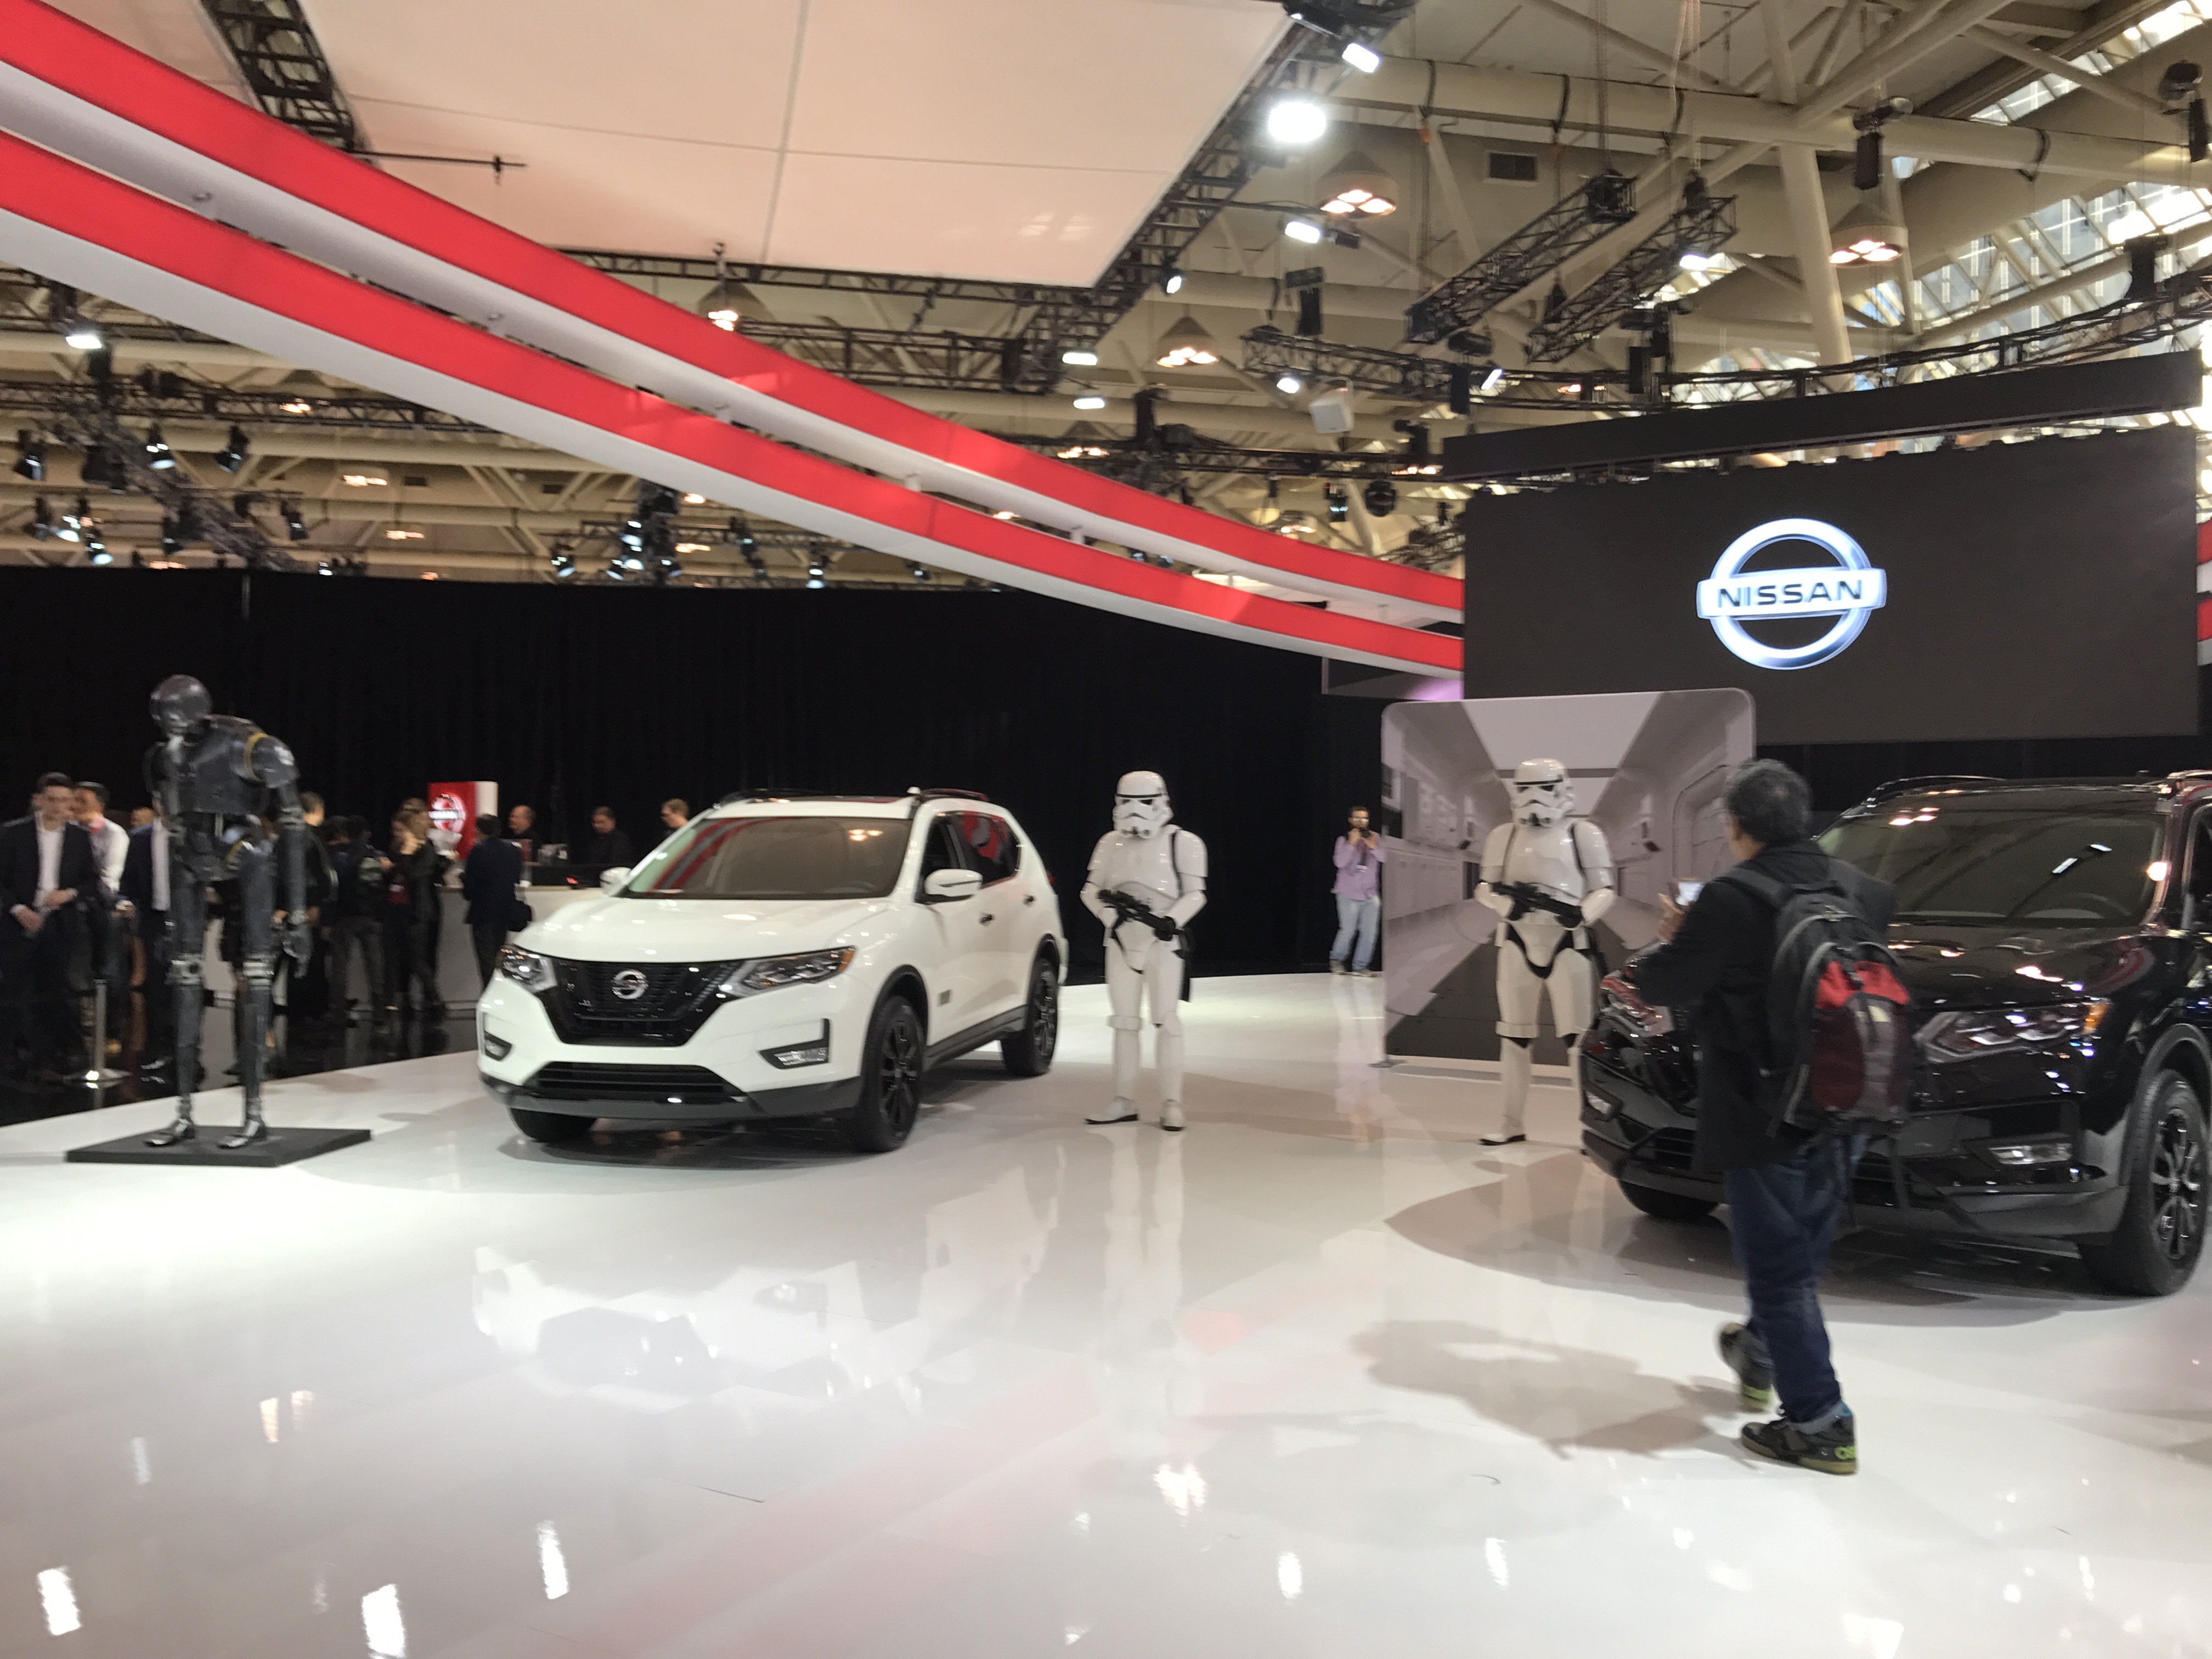 Nissan - Canadian International Autoshow #CIAS2017